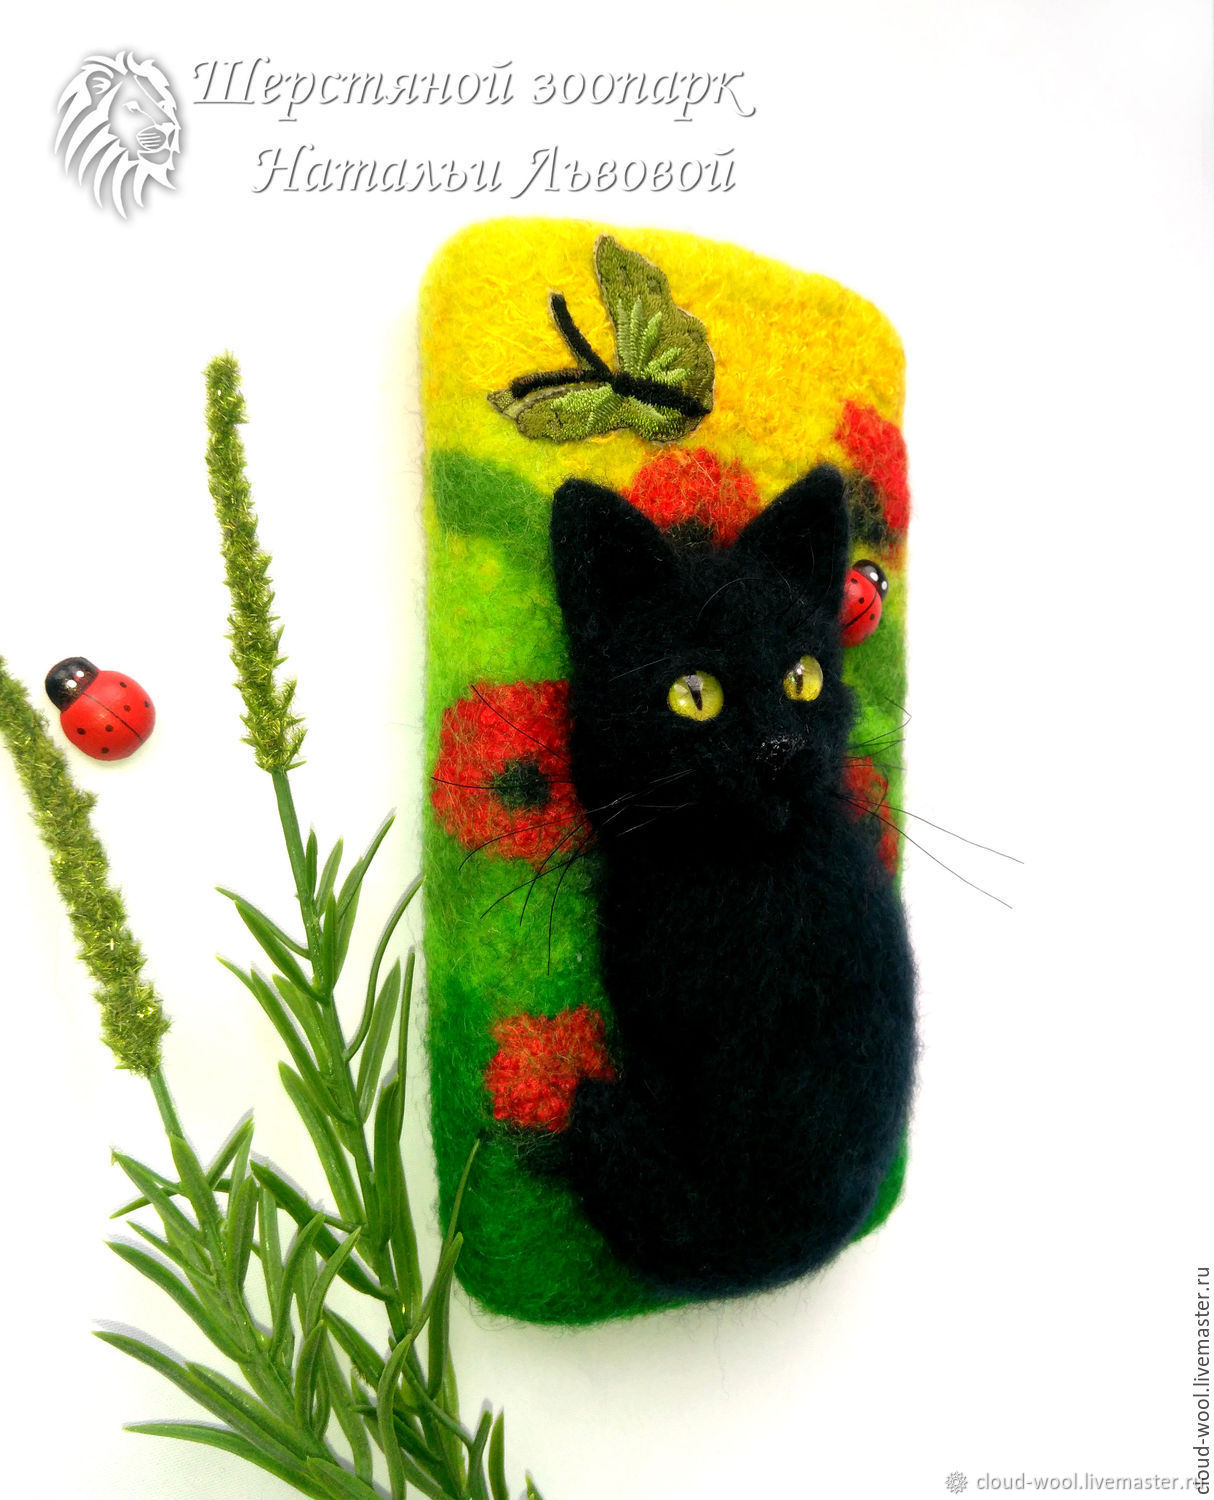 Cover for your cat and Poppies case for cell phone case felted wool, Covers, Sochi, Фото №1